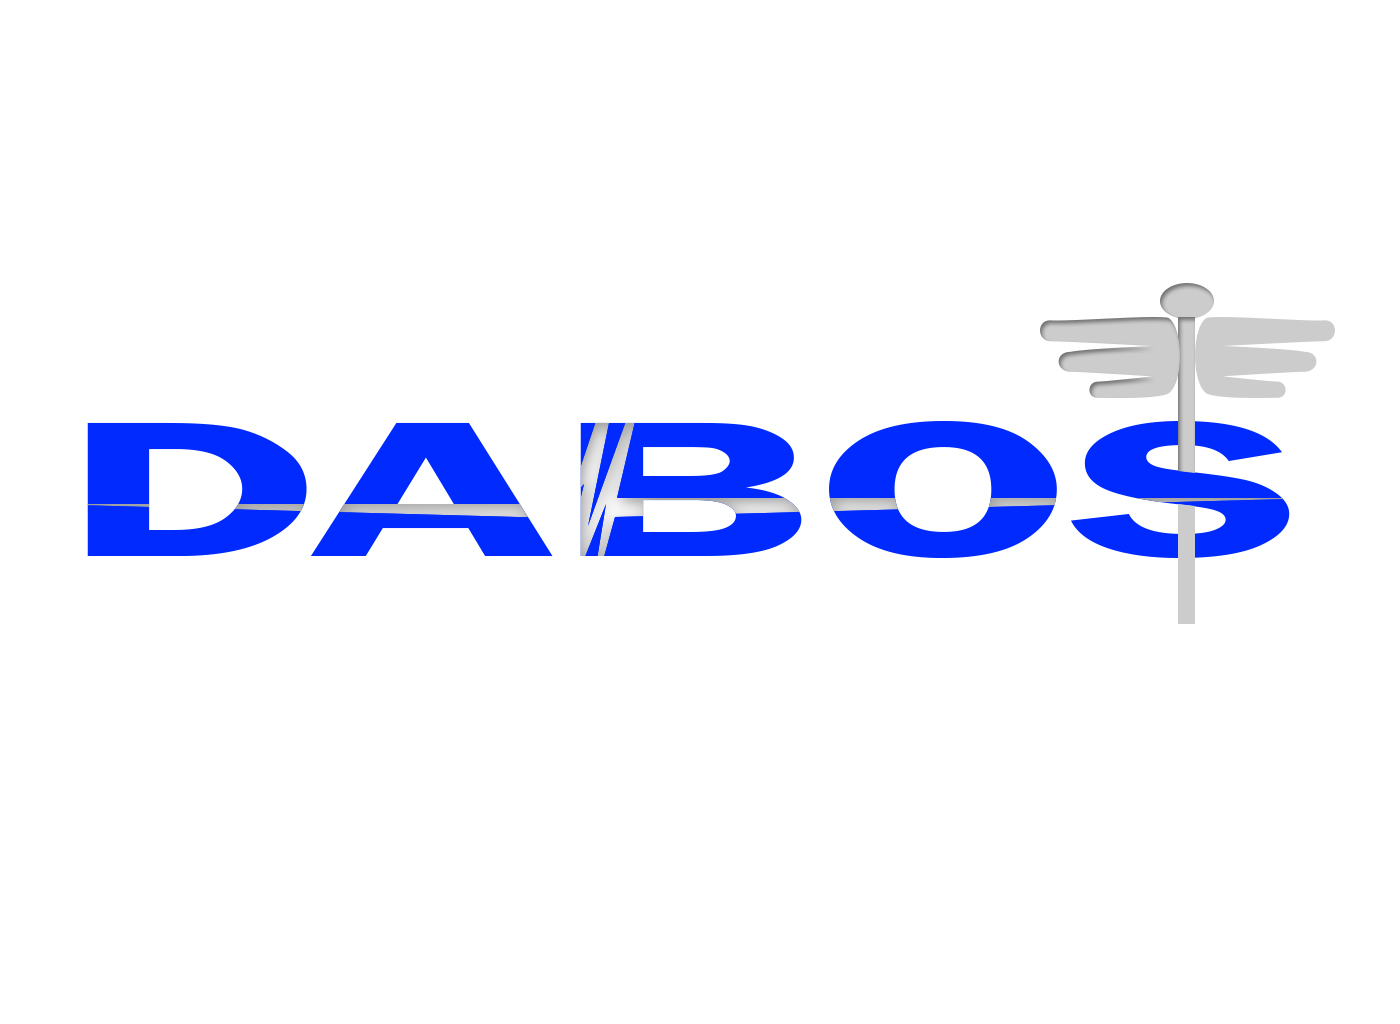 Logo Design by drunkman - Entry No. 153 in the Logo Design Contest Imaginative Logo Design for DABOS, Limited Liability Company.